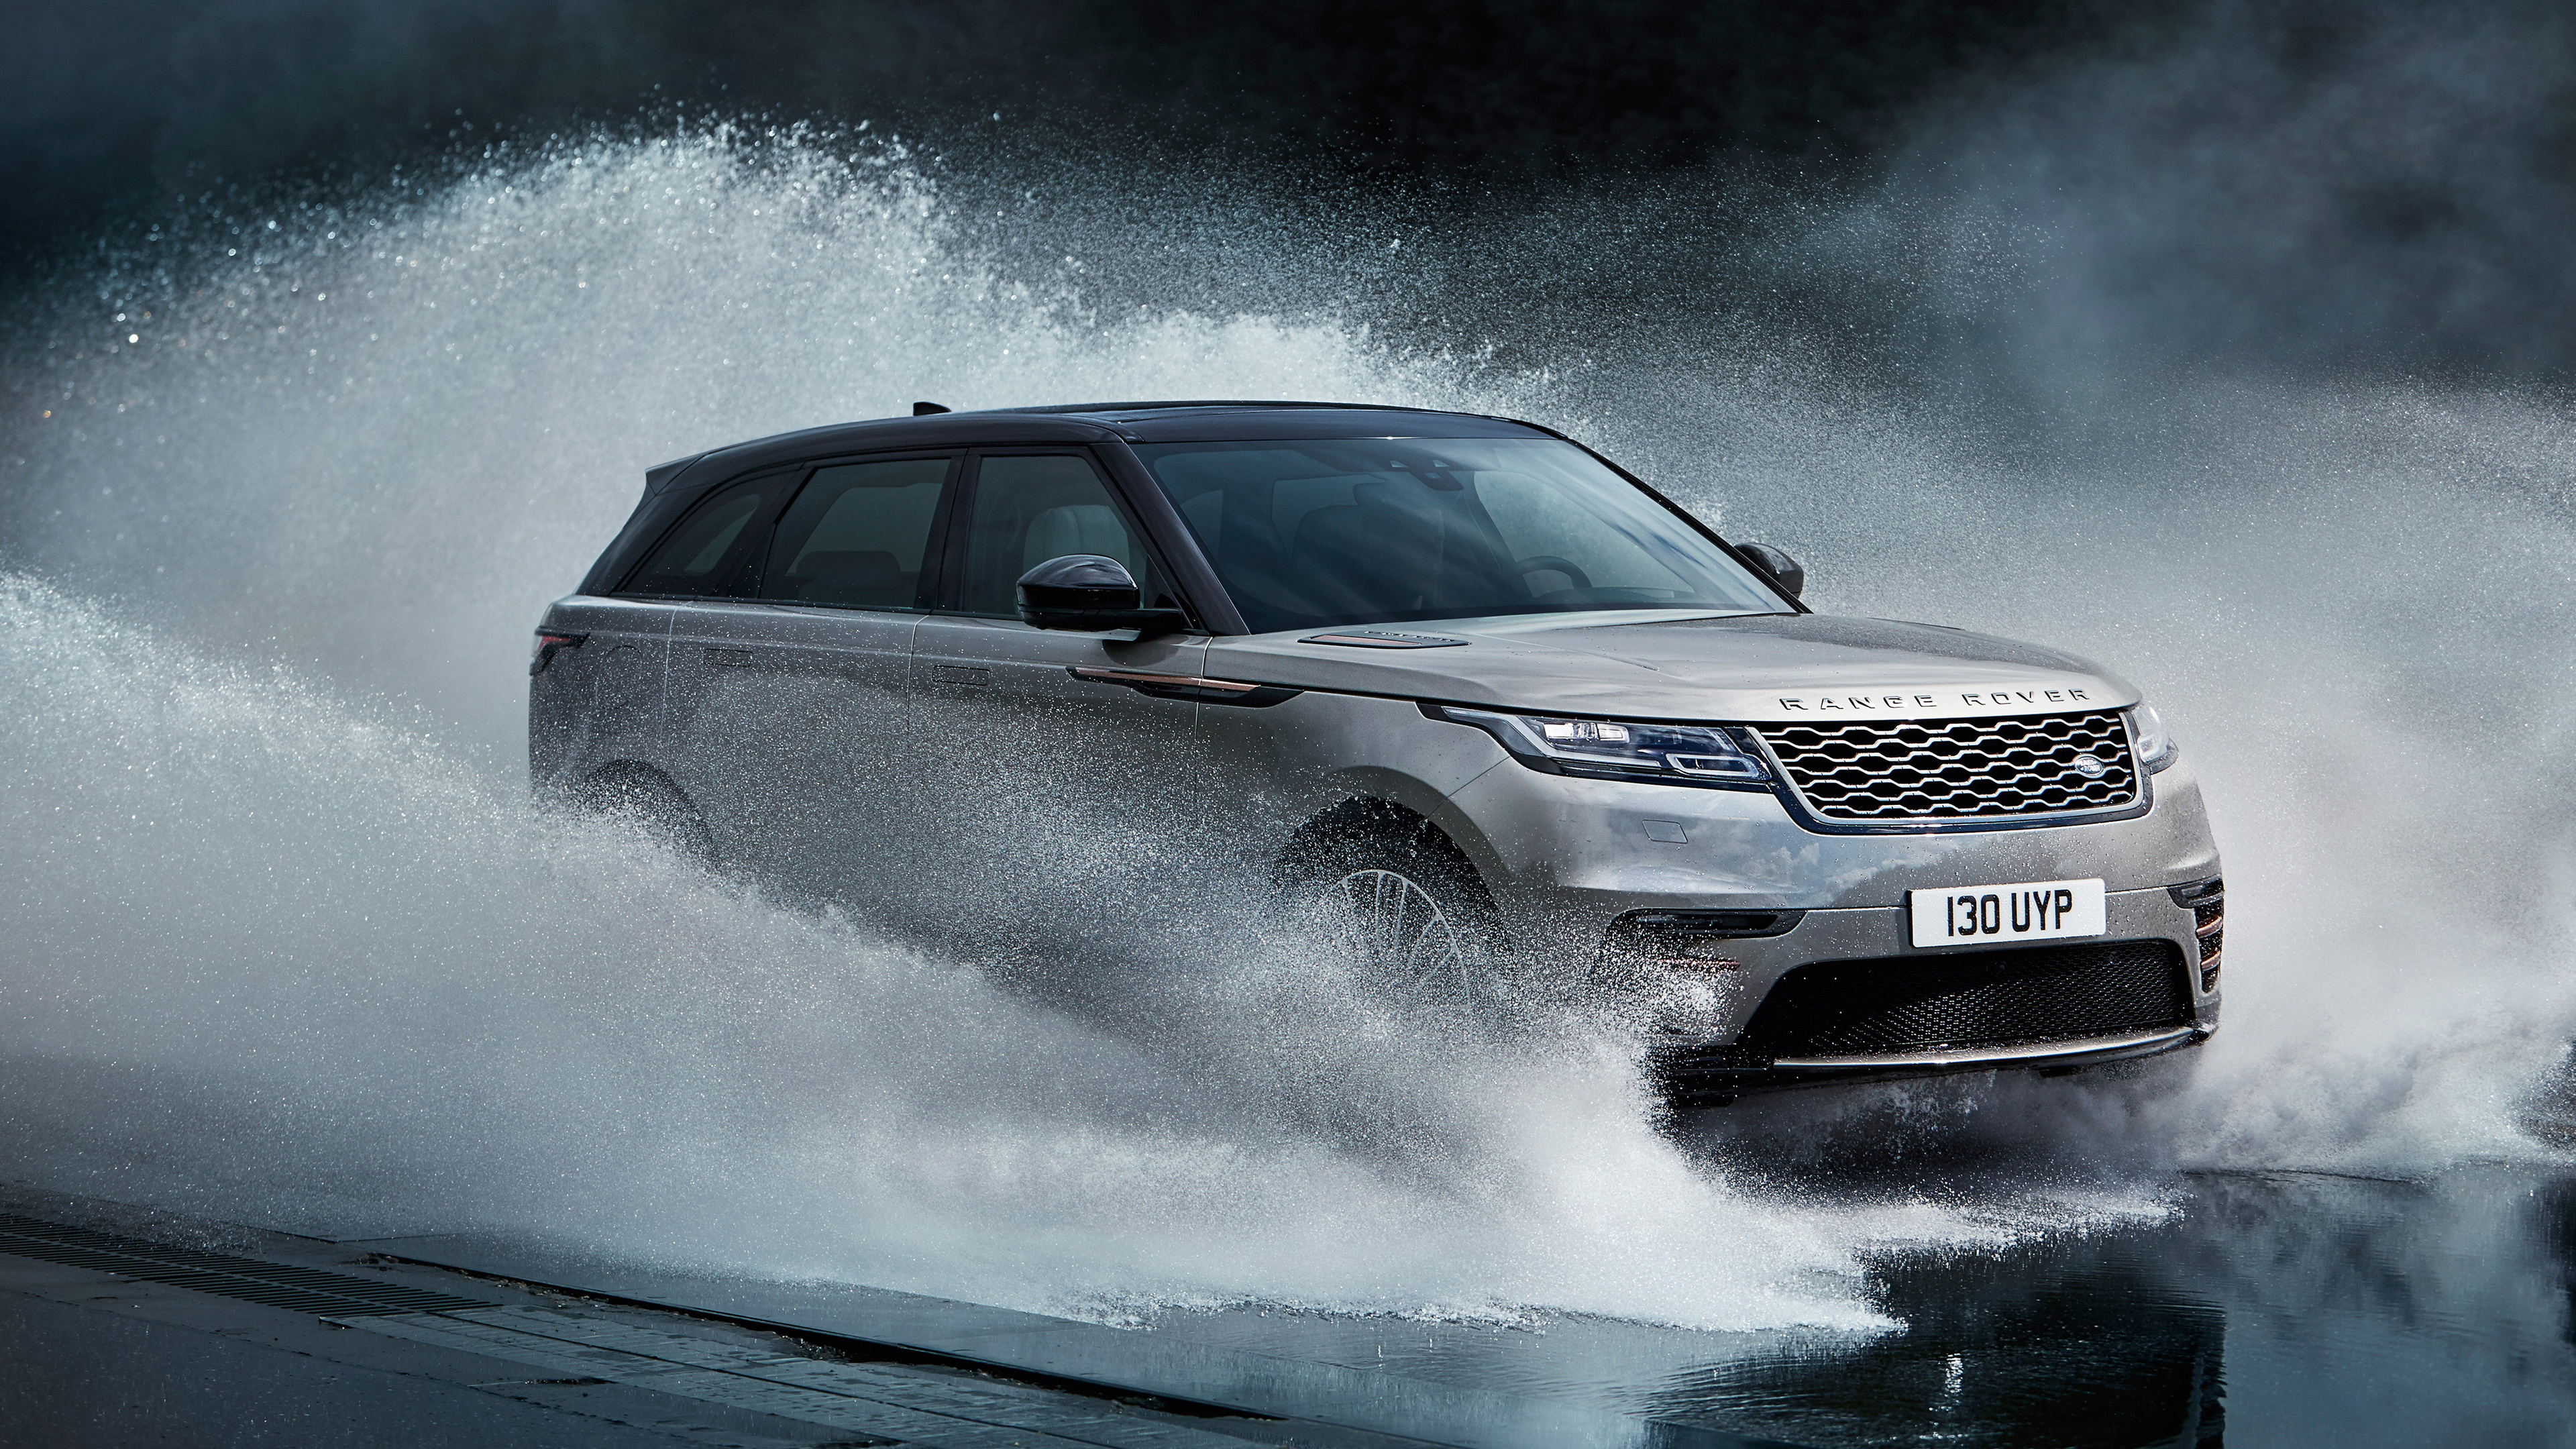 range rover velar 2018 4k 1539105071 - Range Rover Velar 2018 4k - range rover wallpapers, range rover velar wallpapers, land rover wallpapers, hd-wallpapers, cars wallpapers, 4k-wallpapers, 2018 cars wallpapers